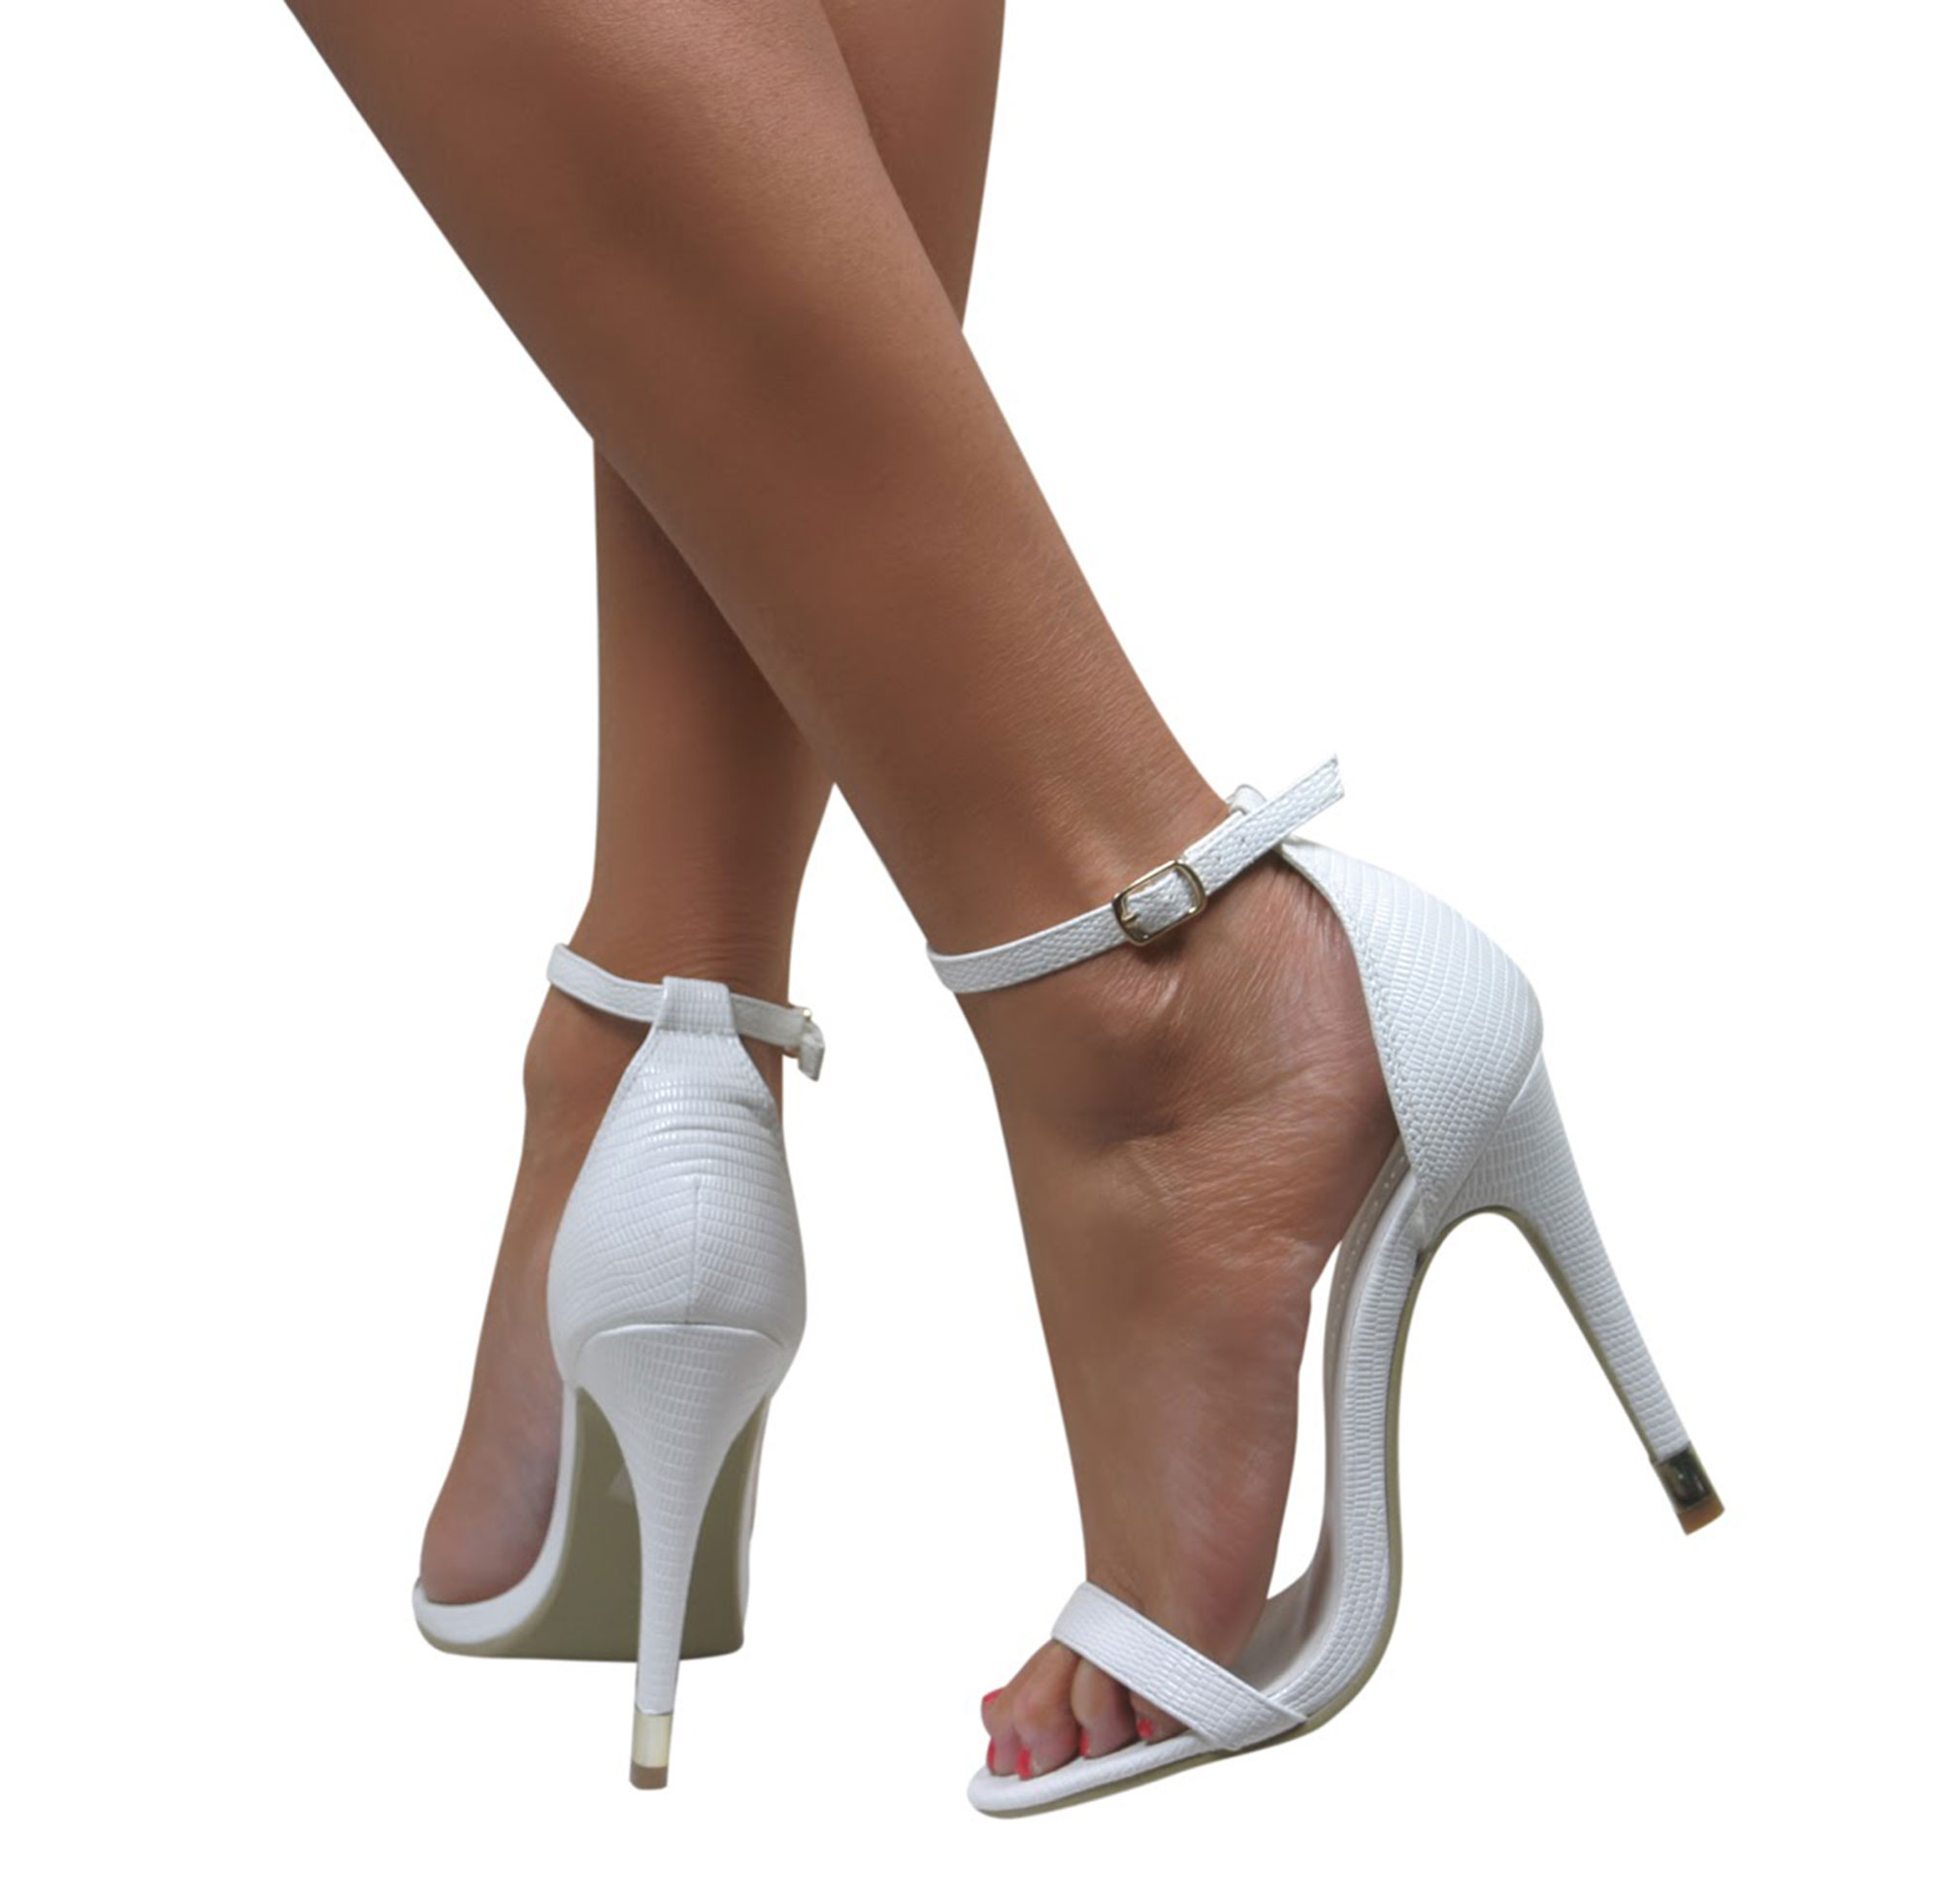 LADIES STRAPPY STILETTO HIGH HEEL BARELY THERE SANDALS ANKLE STRAP